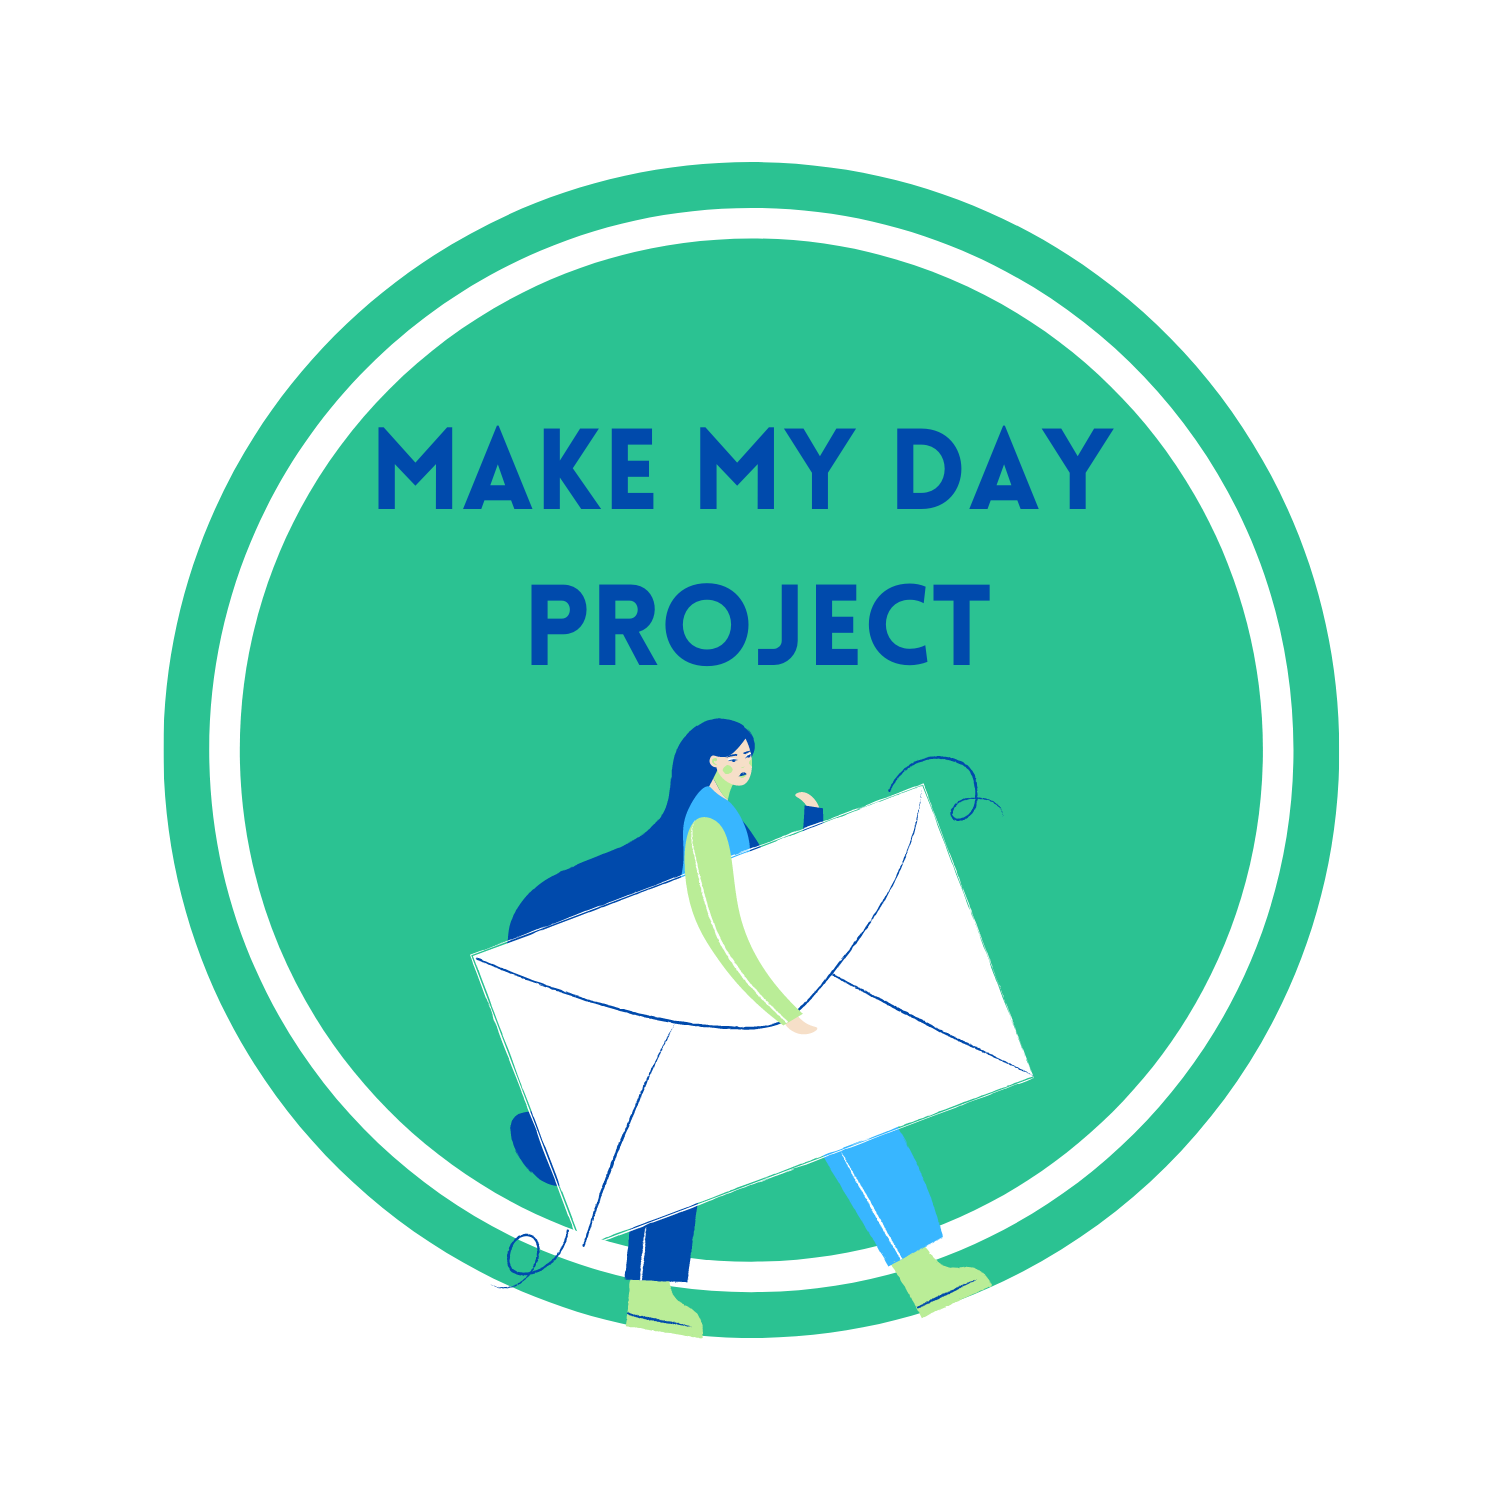 Make My Day Project